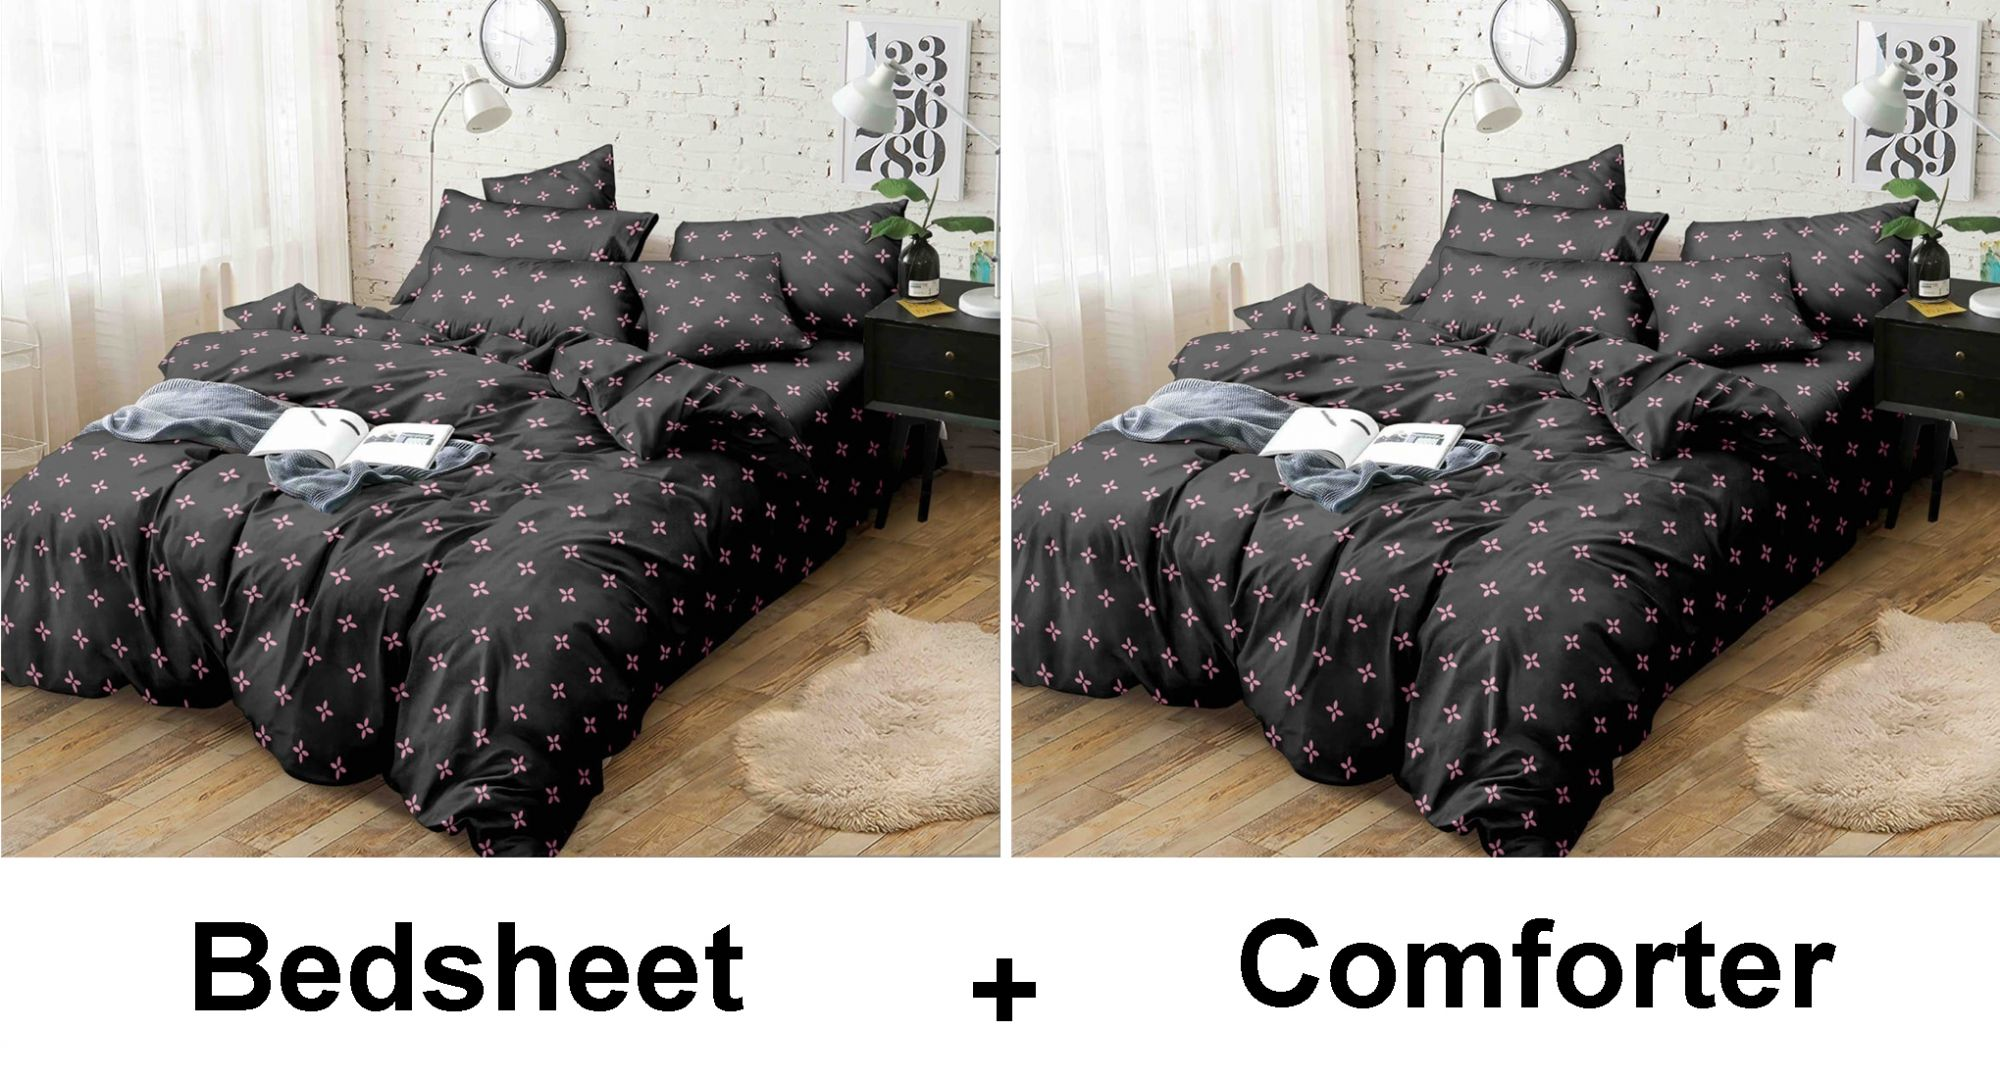 Kuber Industries Floral Design Glace Cotton AC Comforter King Size Bed Comforter, Double Bed Sheet, 2 Pillow Cover (Black, 90x100 Inches)-Set of 4 Pieces-CTKTC33188